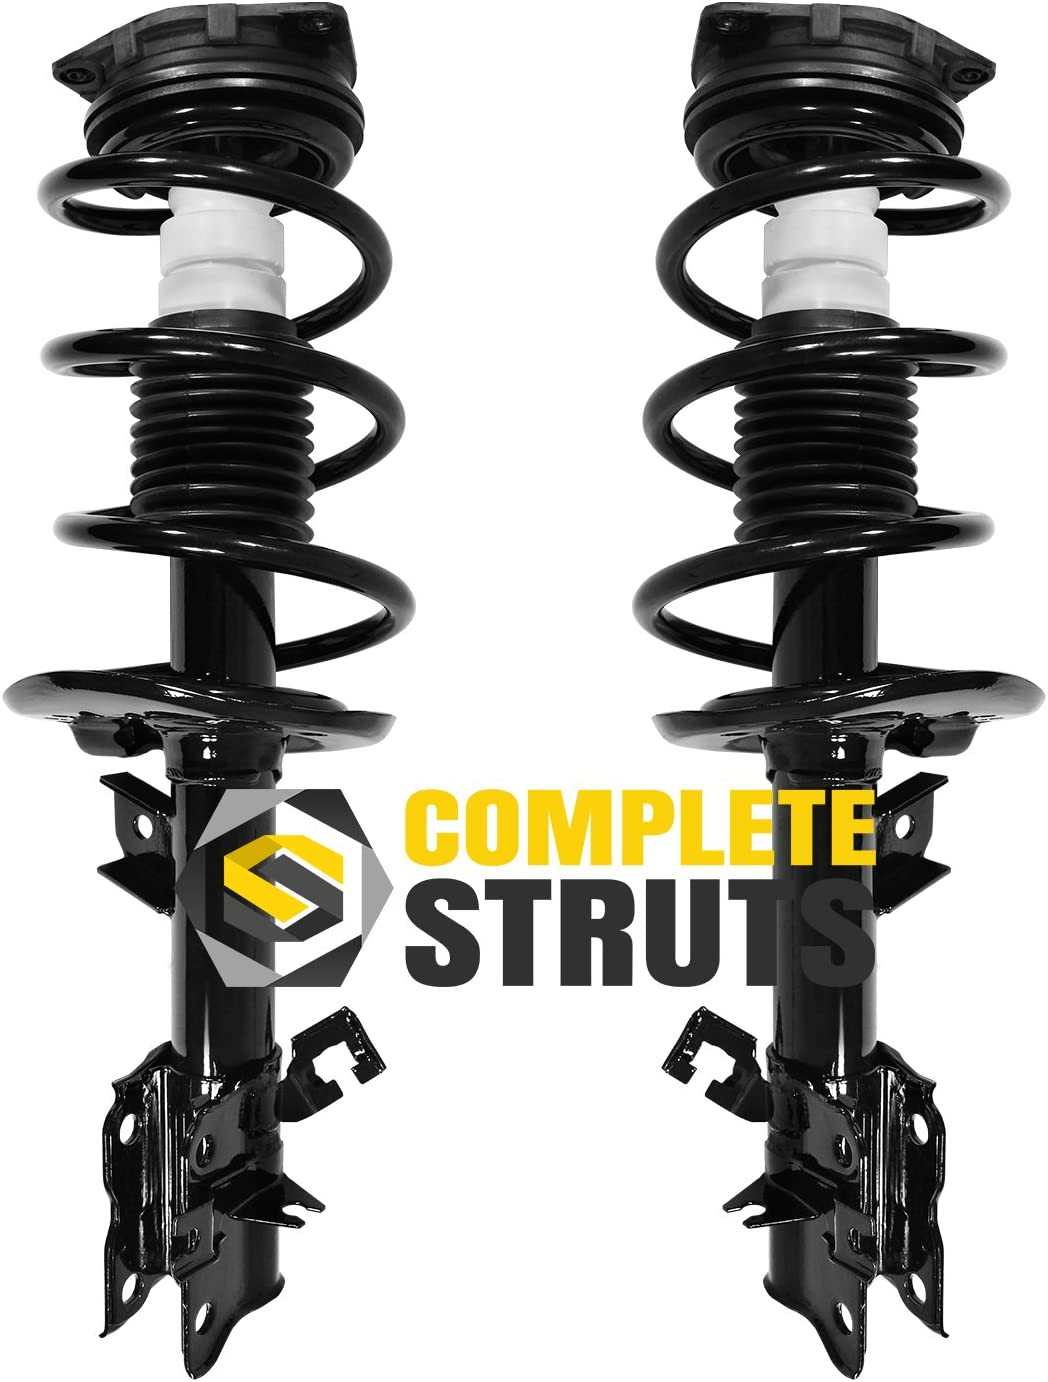 Front Quick Complete Struts /& Coil Spring Assemblies Compatible with 2009-2014 Nissan Murano Pair